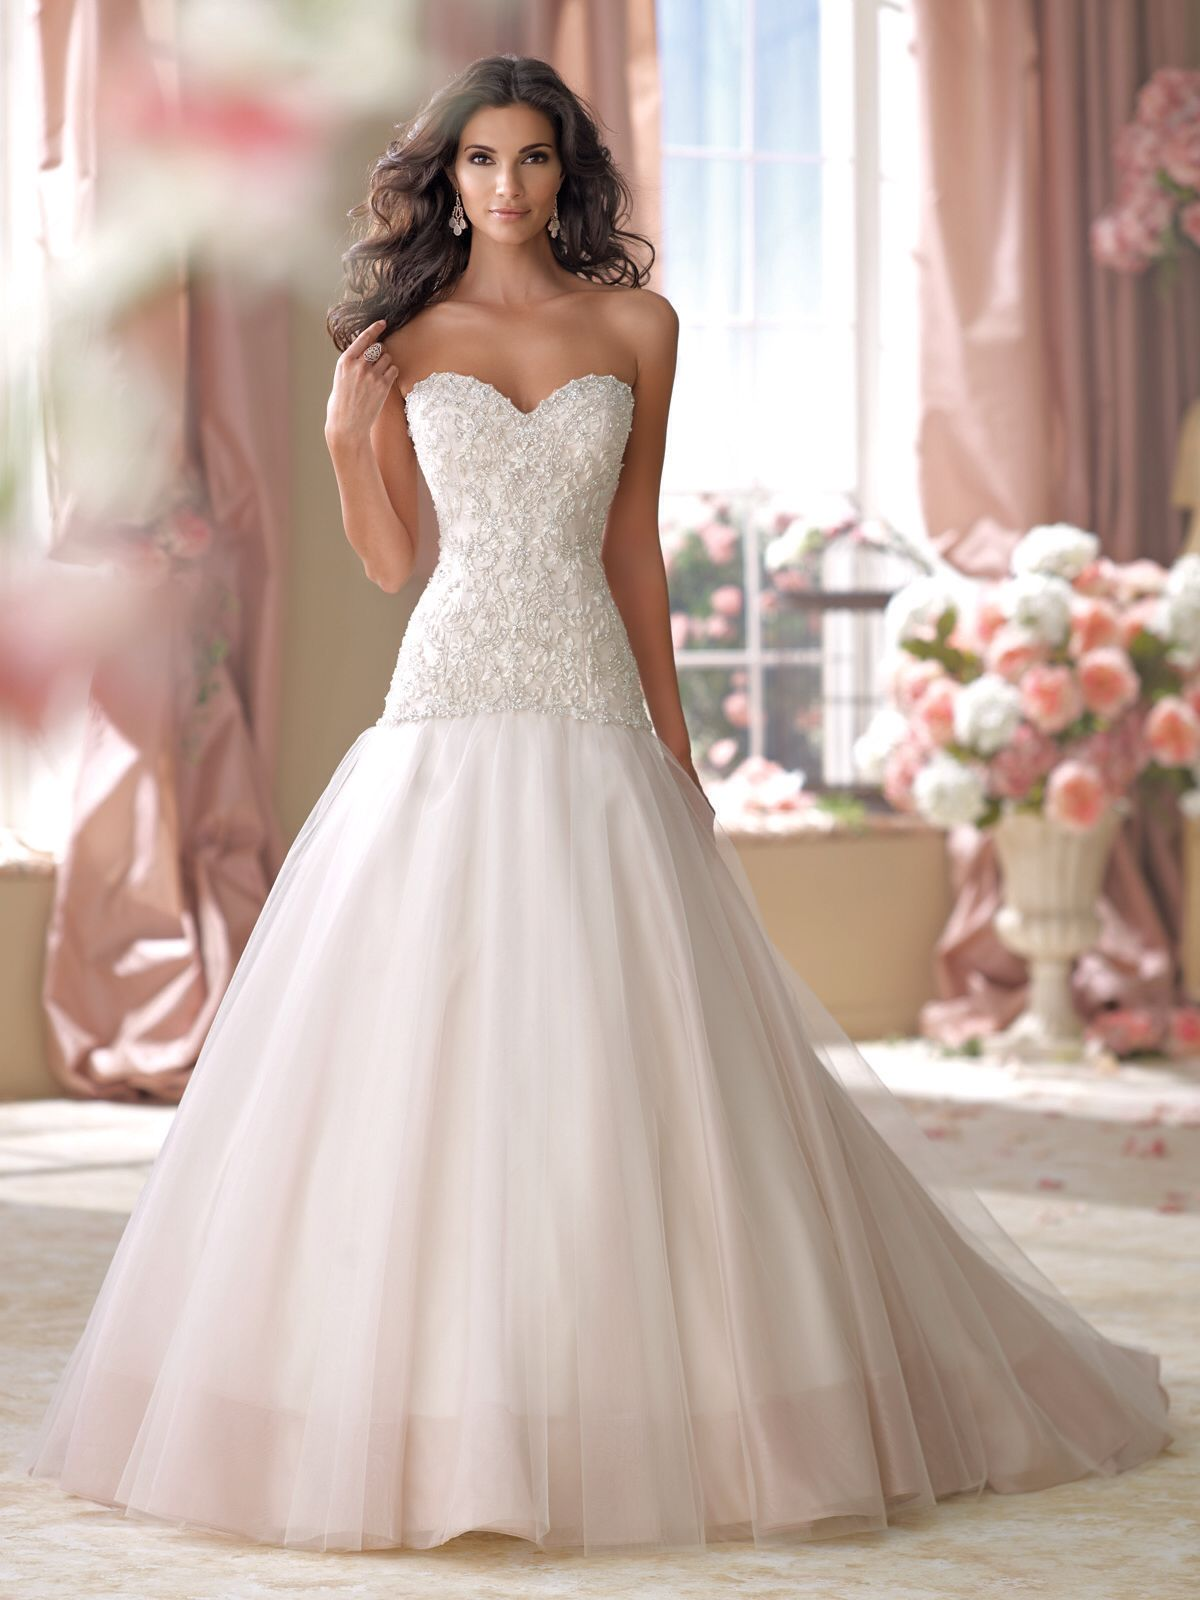 Cora by David Tuttera | Gorgeous Bridal Gowns | Pinterest | Wedding ...